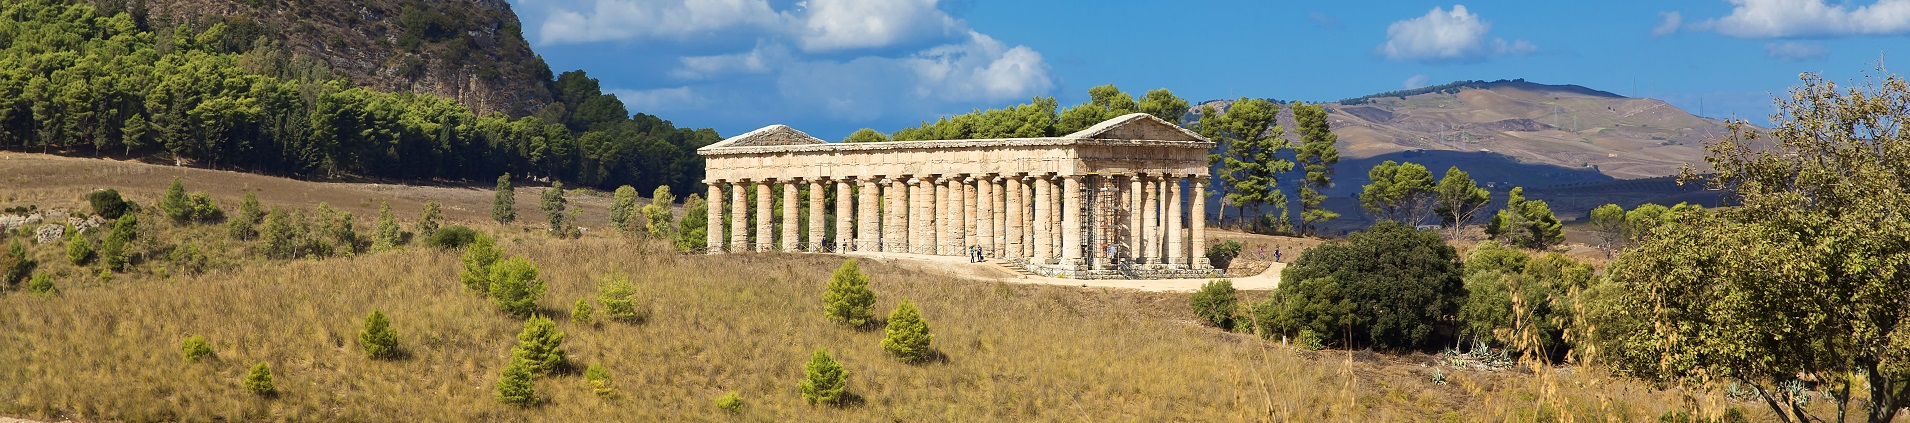 Sicily villas and holiday homes near Segesta